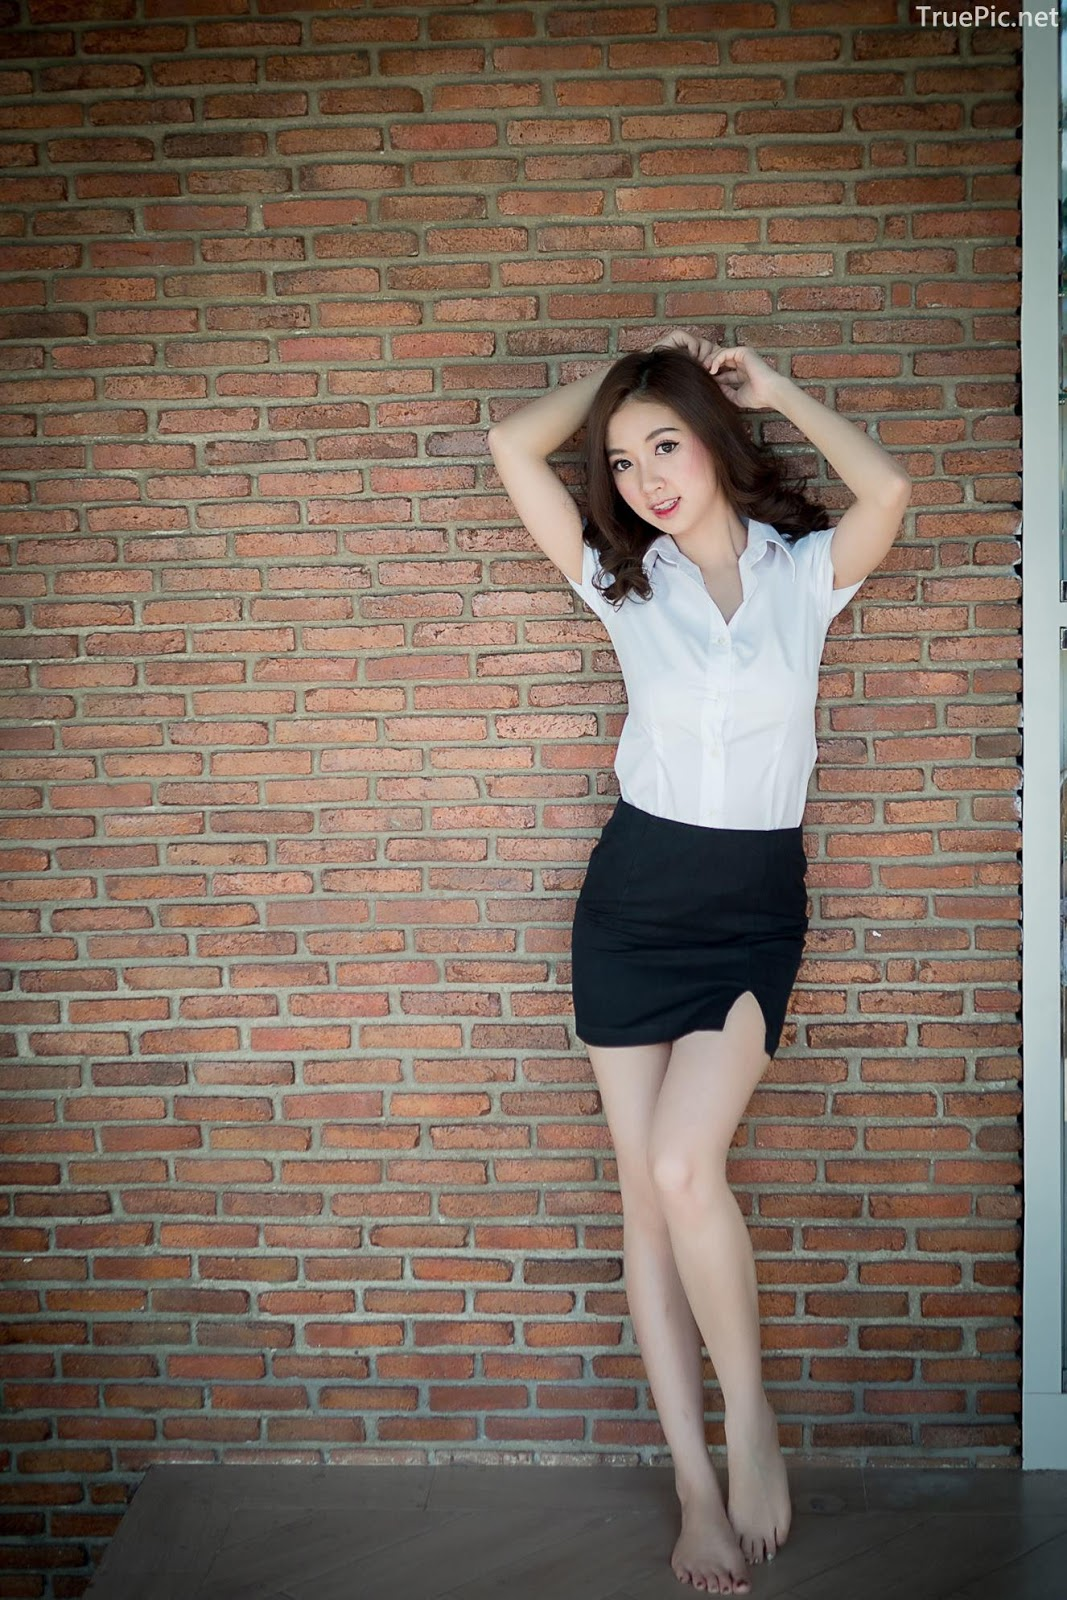 Thailand model - Yingaon Duangporn - Concept The Beautiful Office Girl - Picture 7